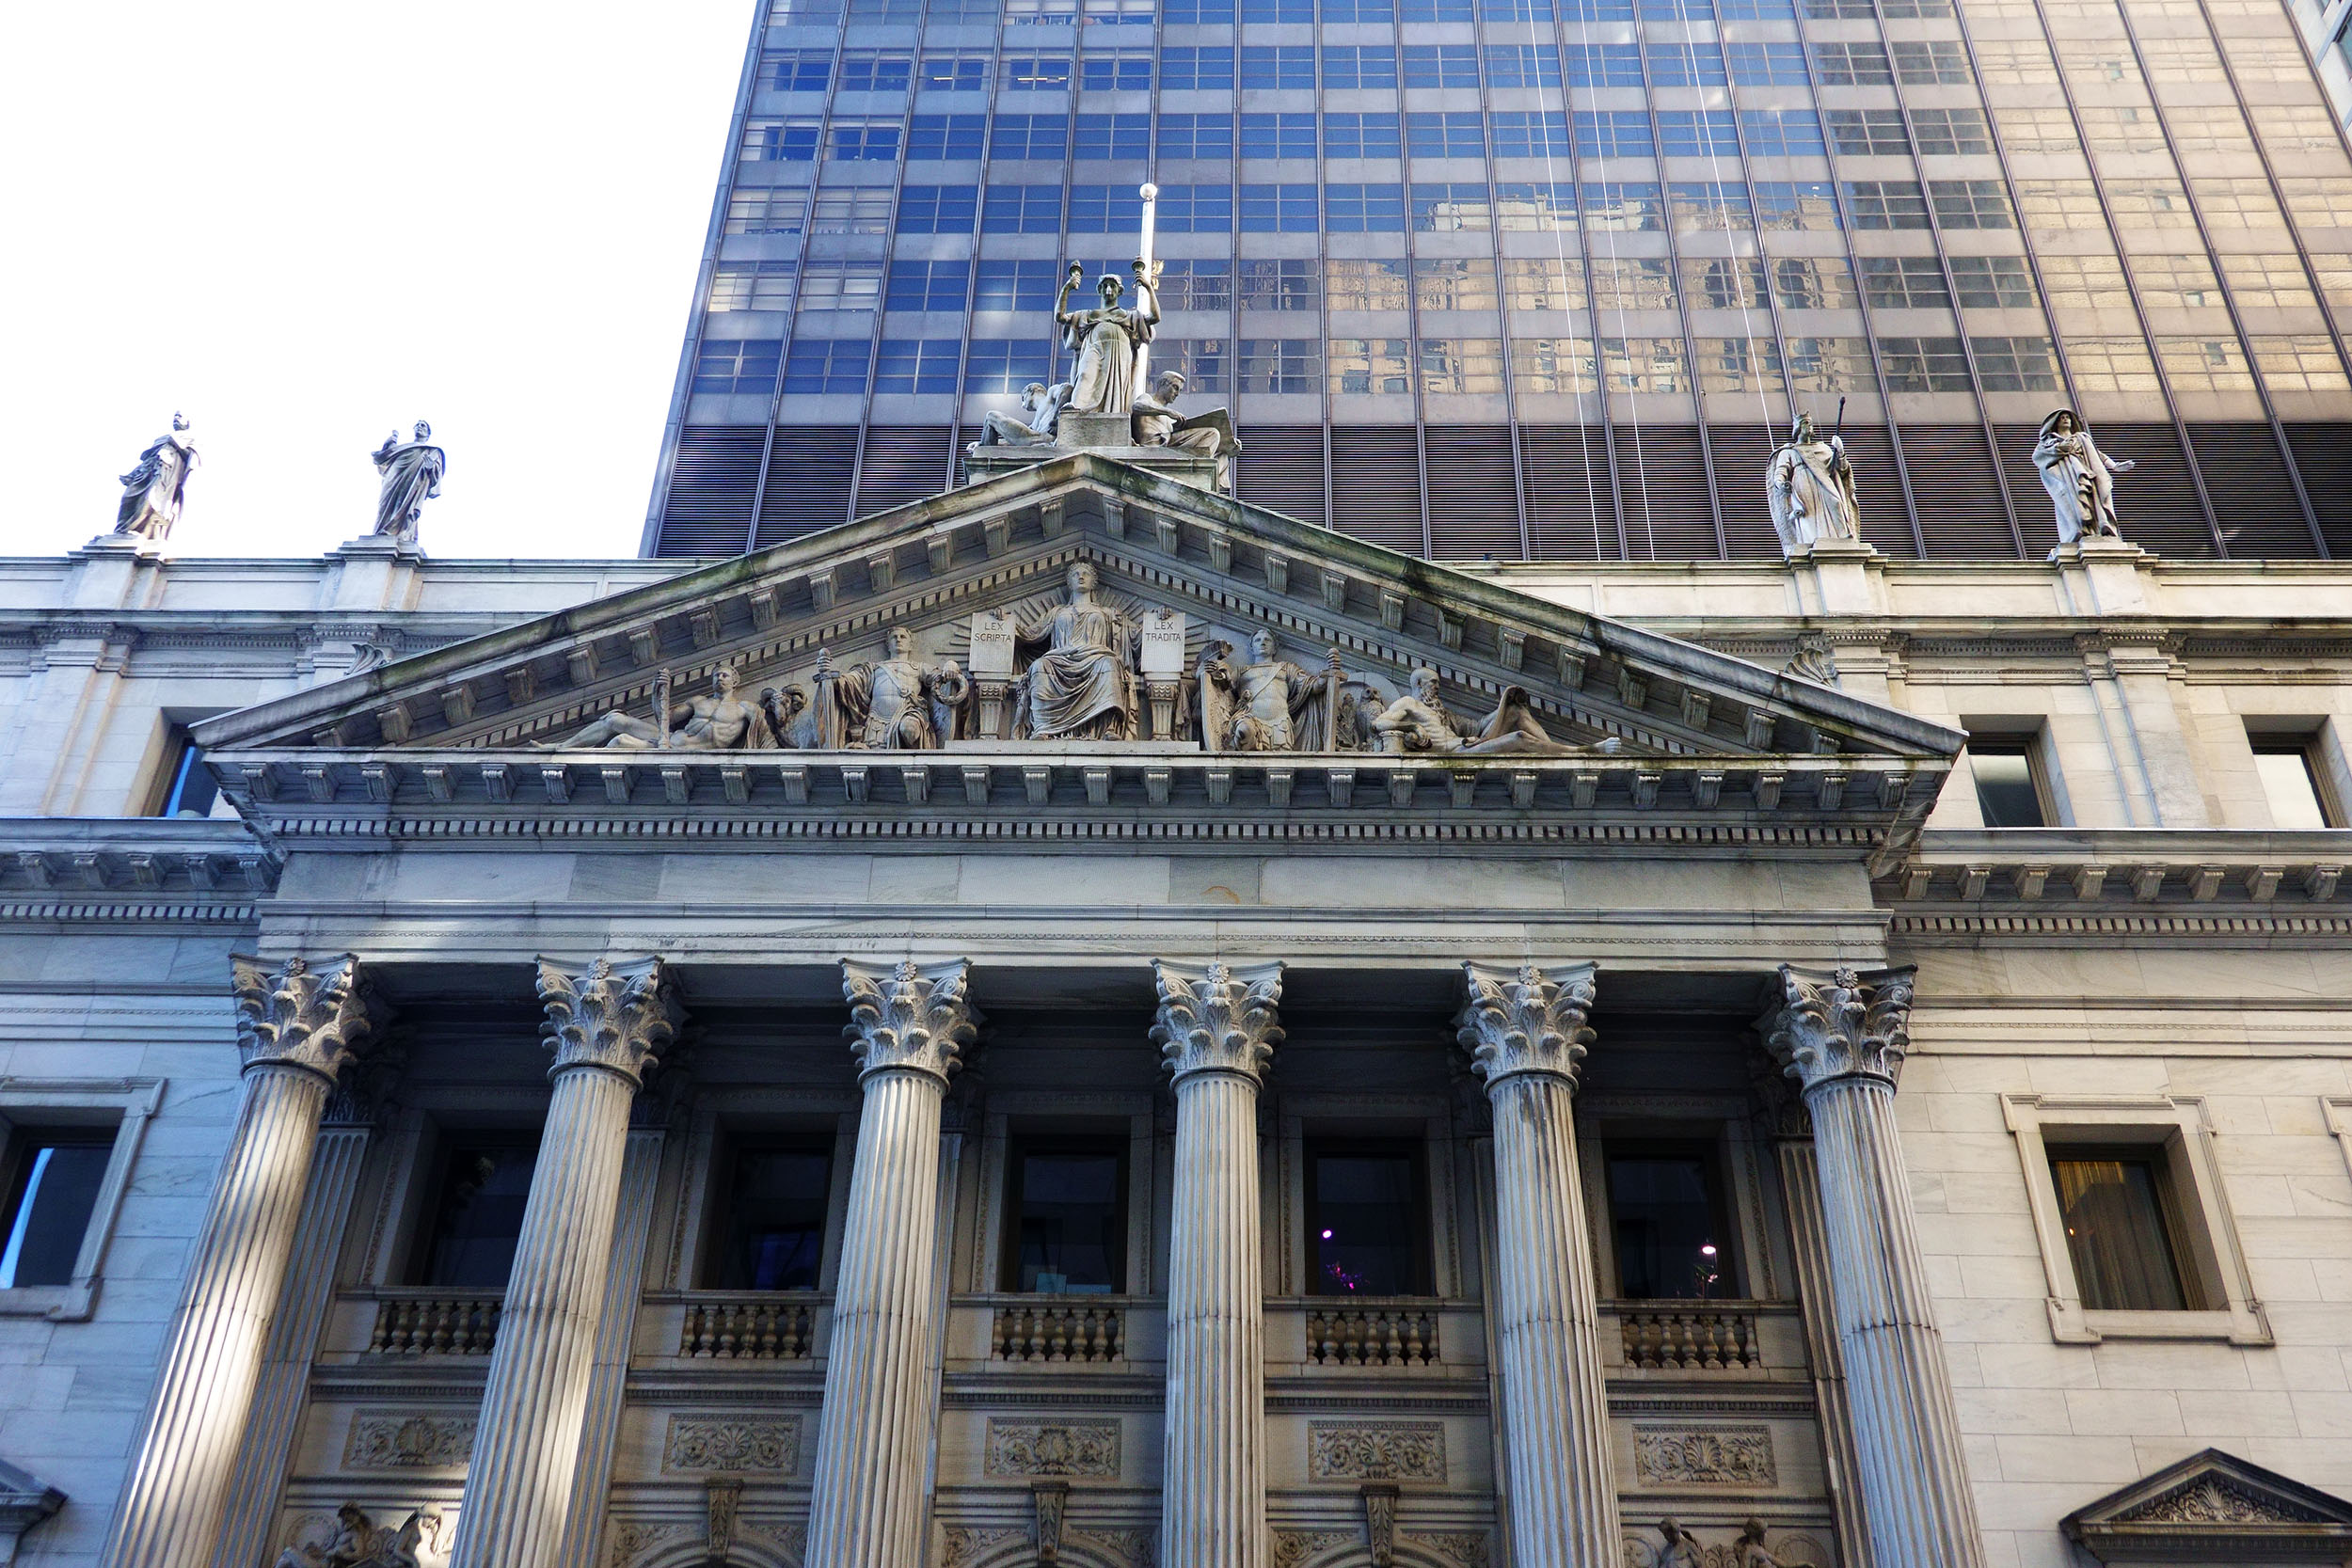 Report reveals 'long-simmering racial tensions' in New York State courts